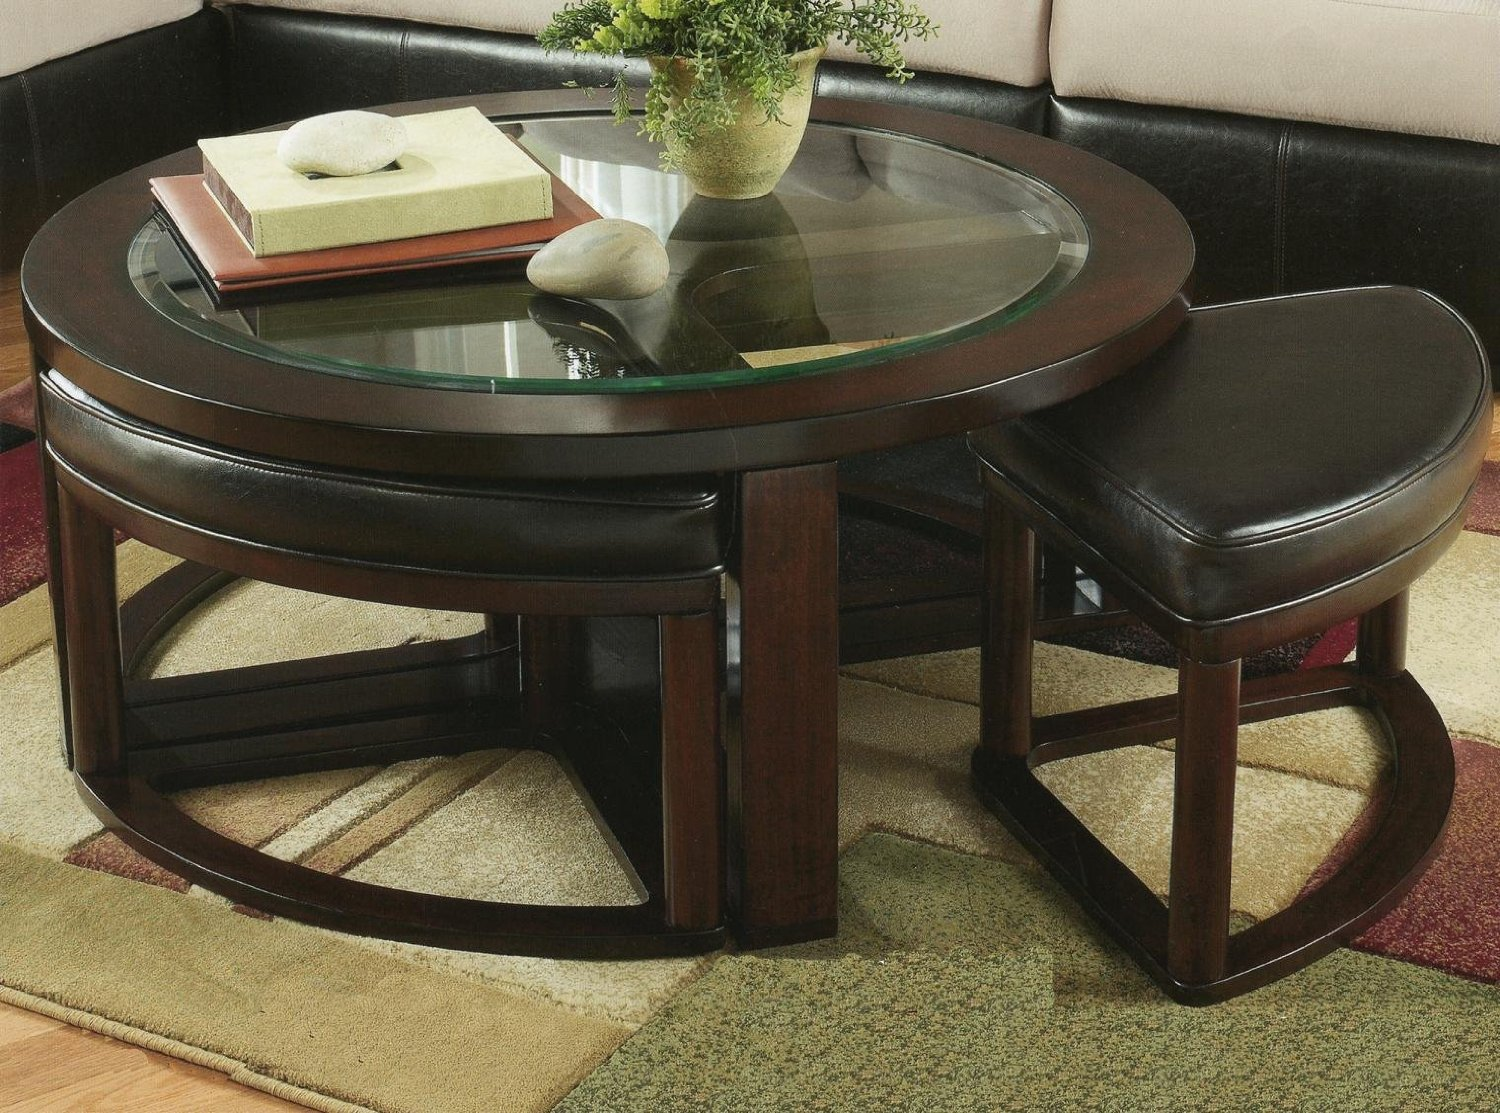 5 Best Coffee Table With Stools – A perfect fit | Tool Box ...